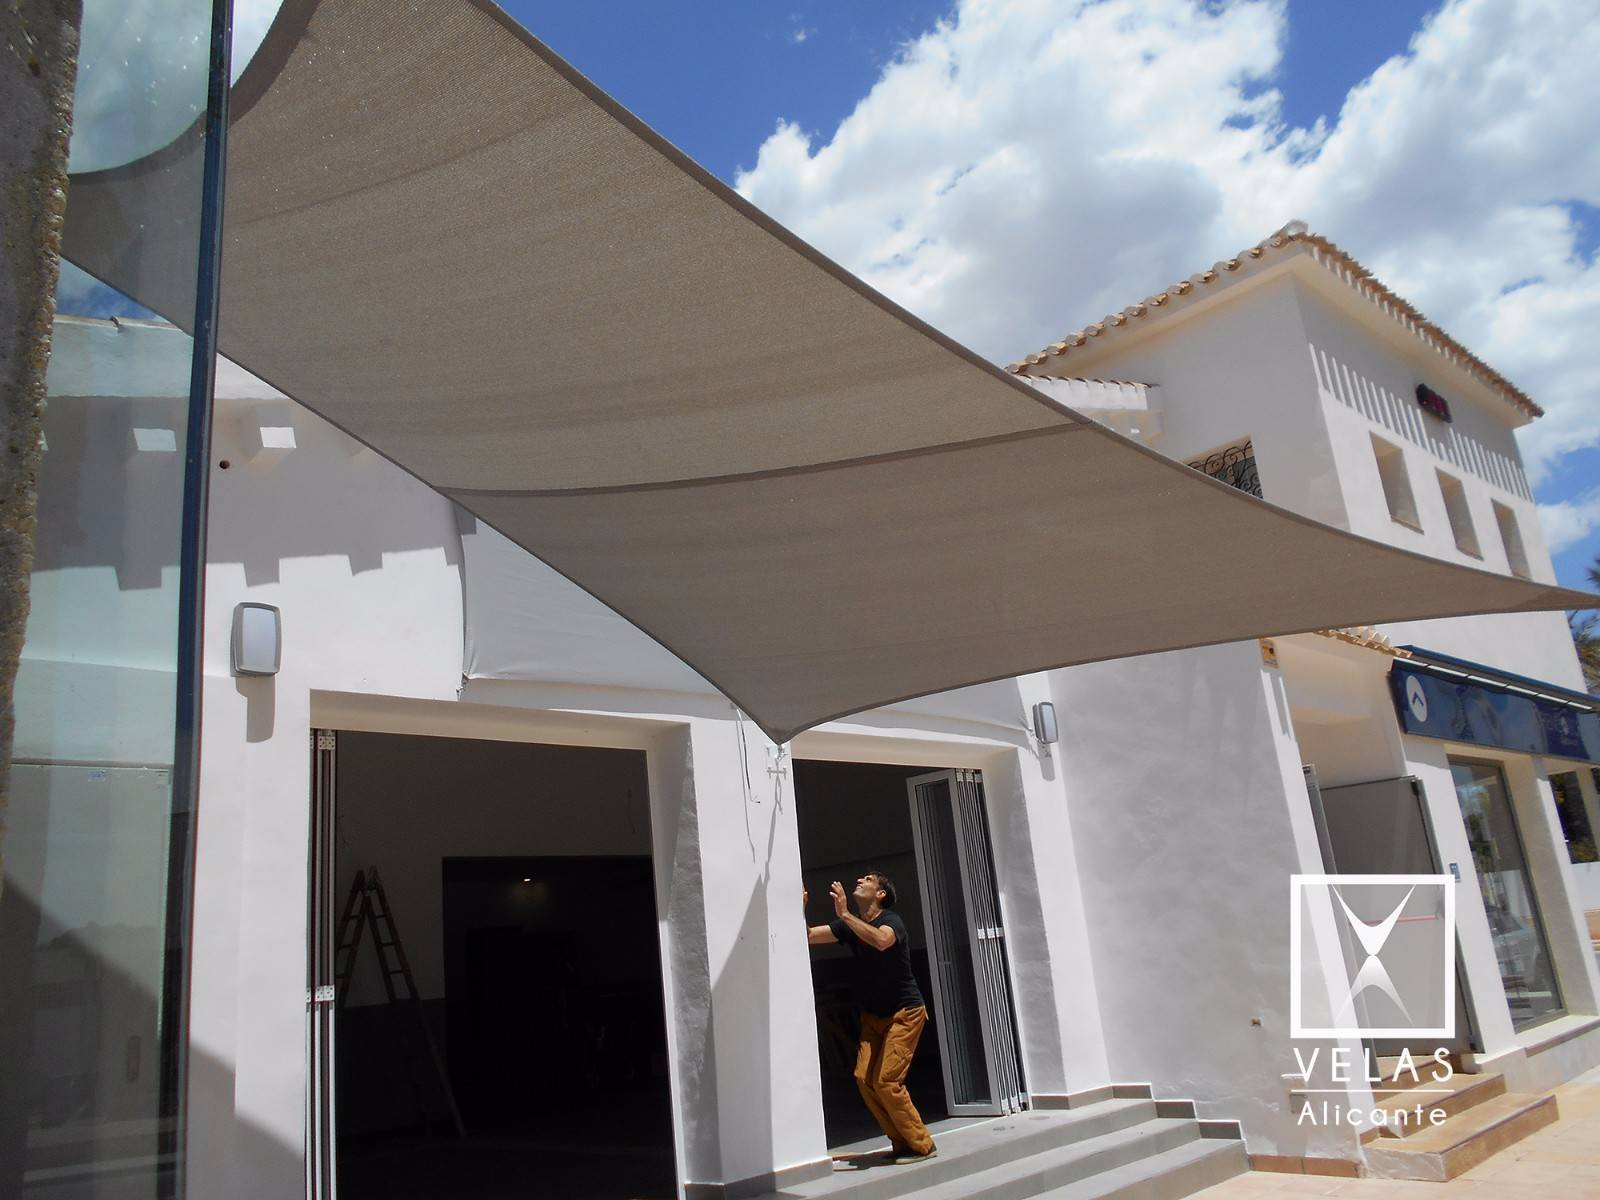 Awnings Sail in Torrevieja